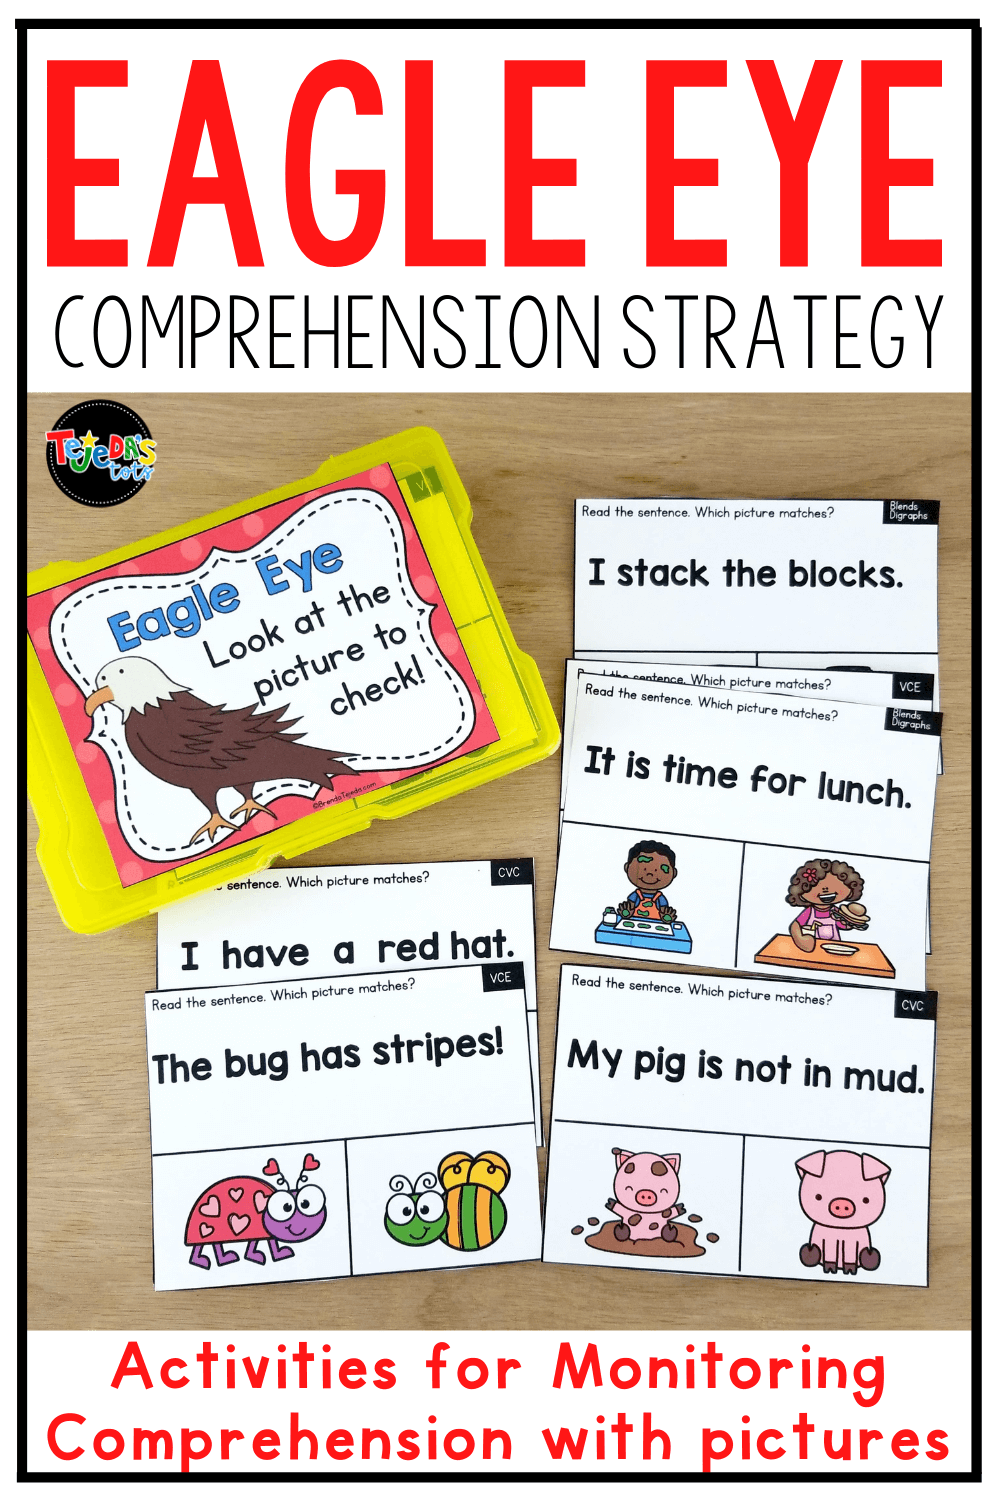 Using Eagle Eye as a Comprehension Strategy